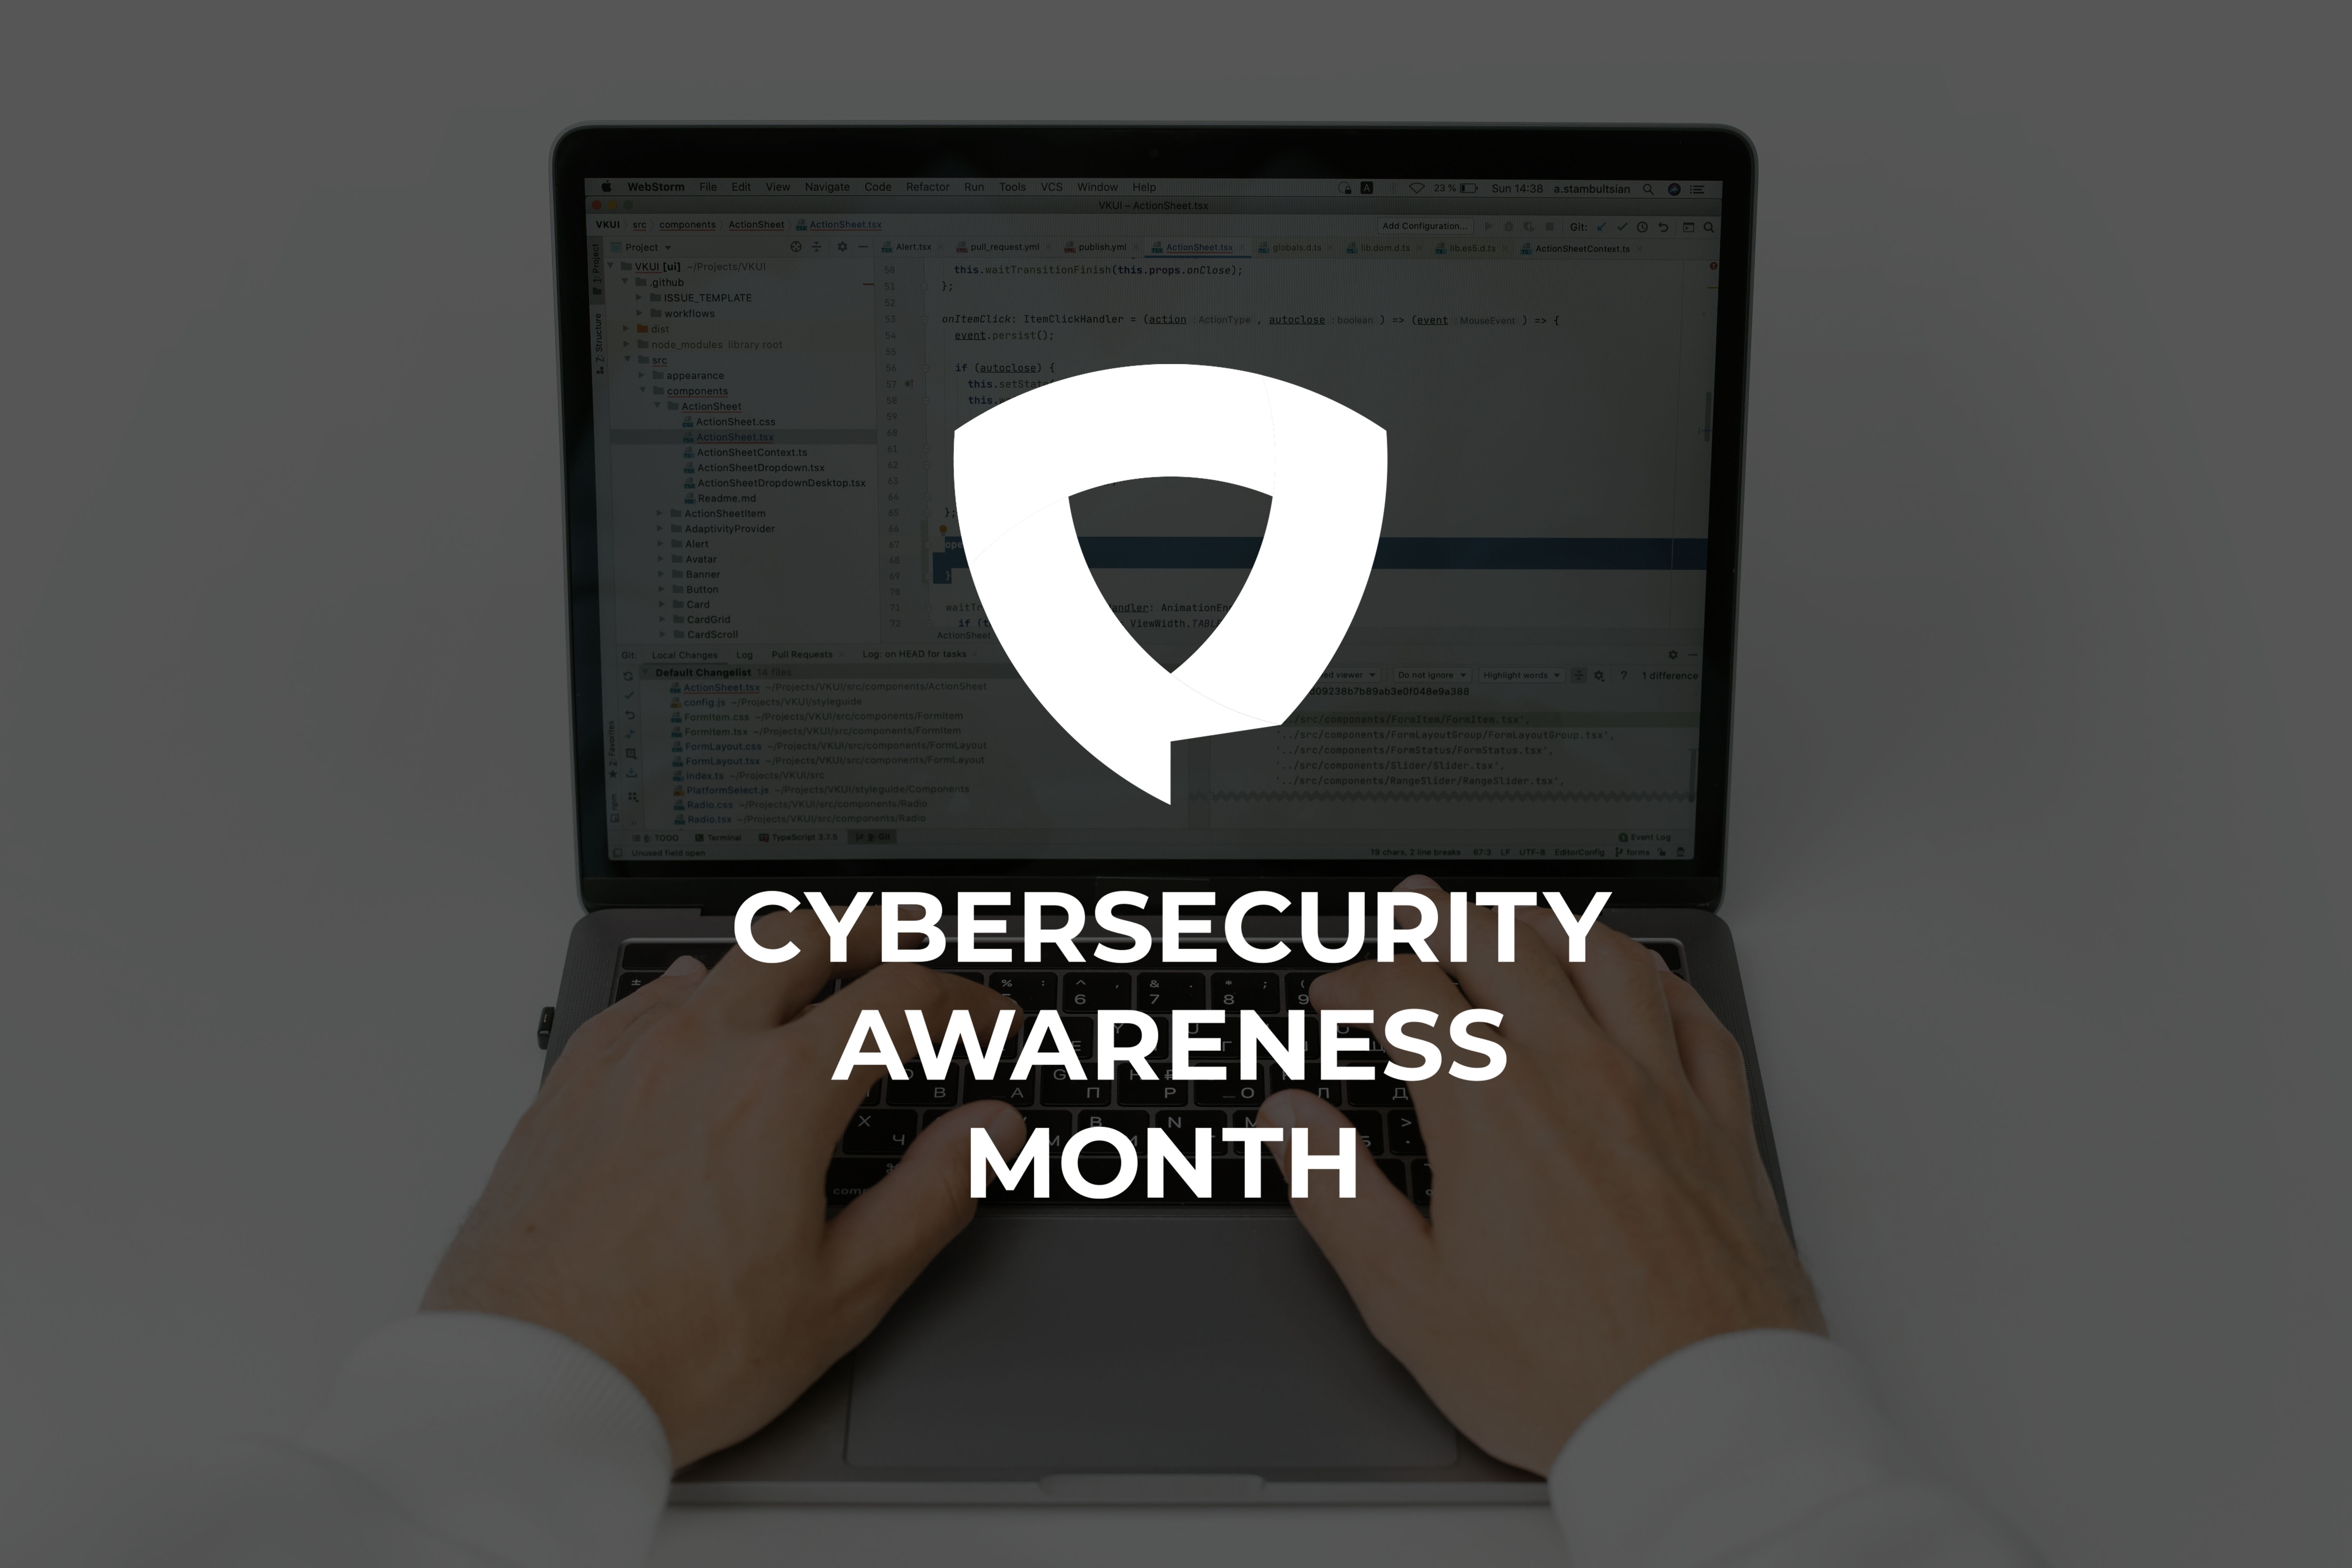 Top SMB Security Tips for Cybersecurity Awareness Month